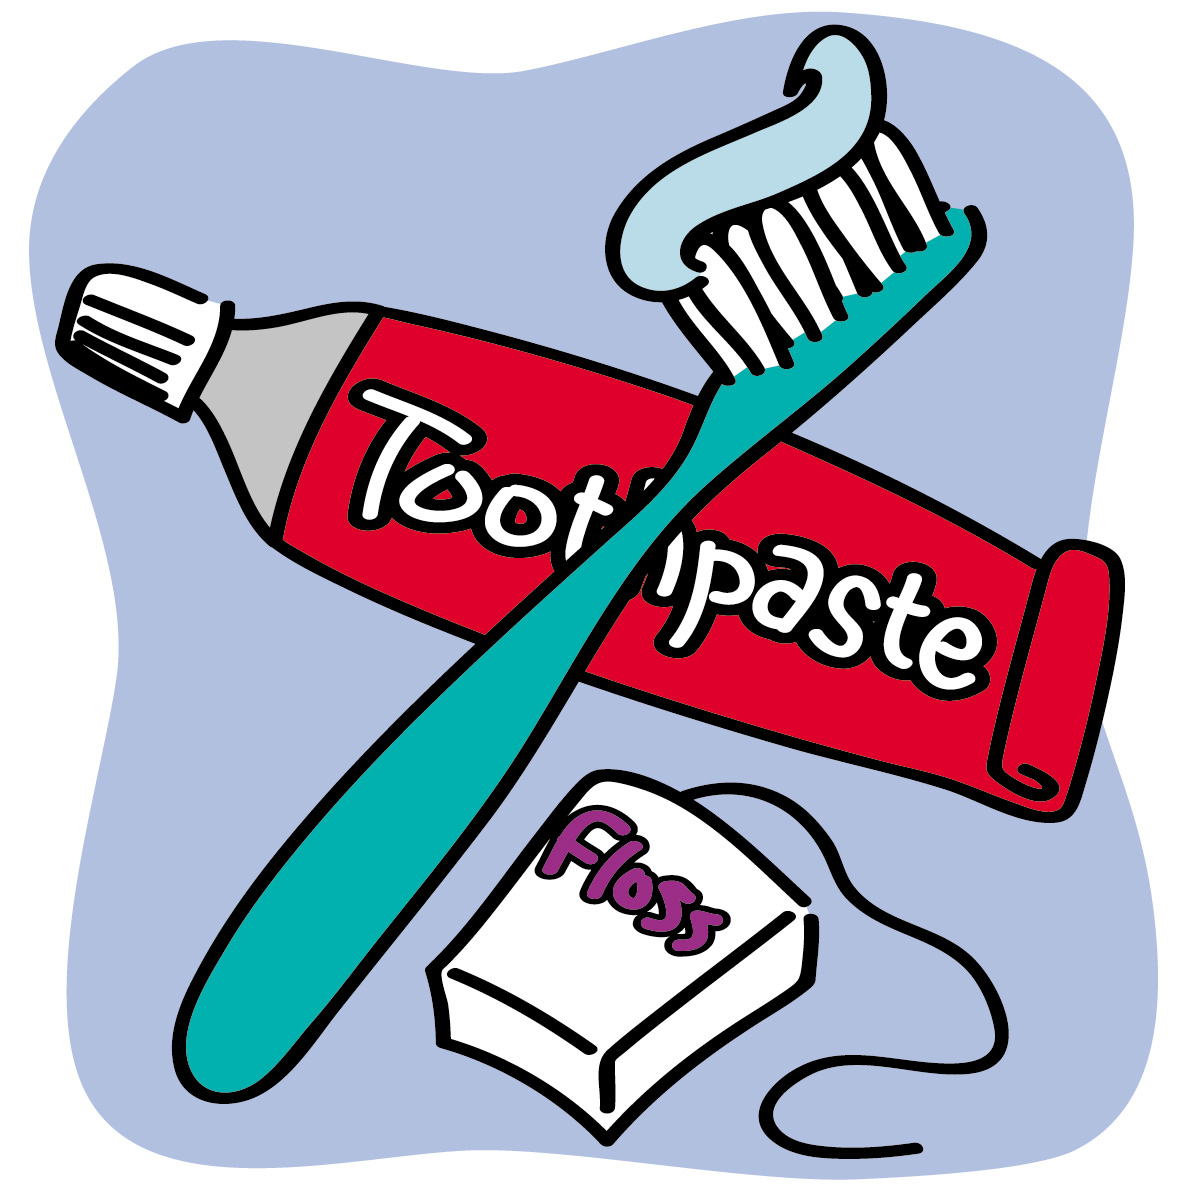 Boy Brushing Teeth Clipart - Cliparts.co